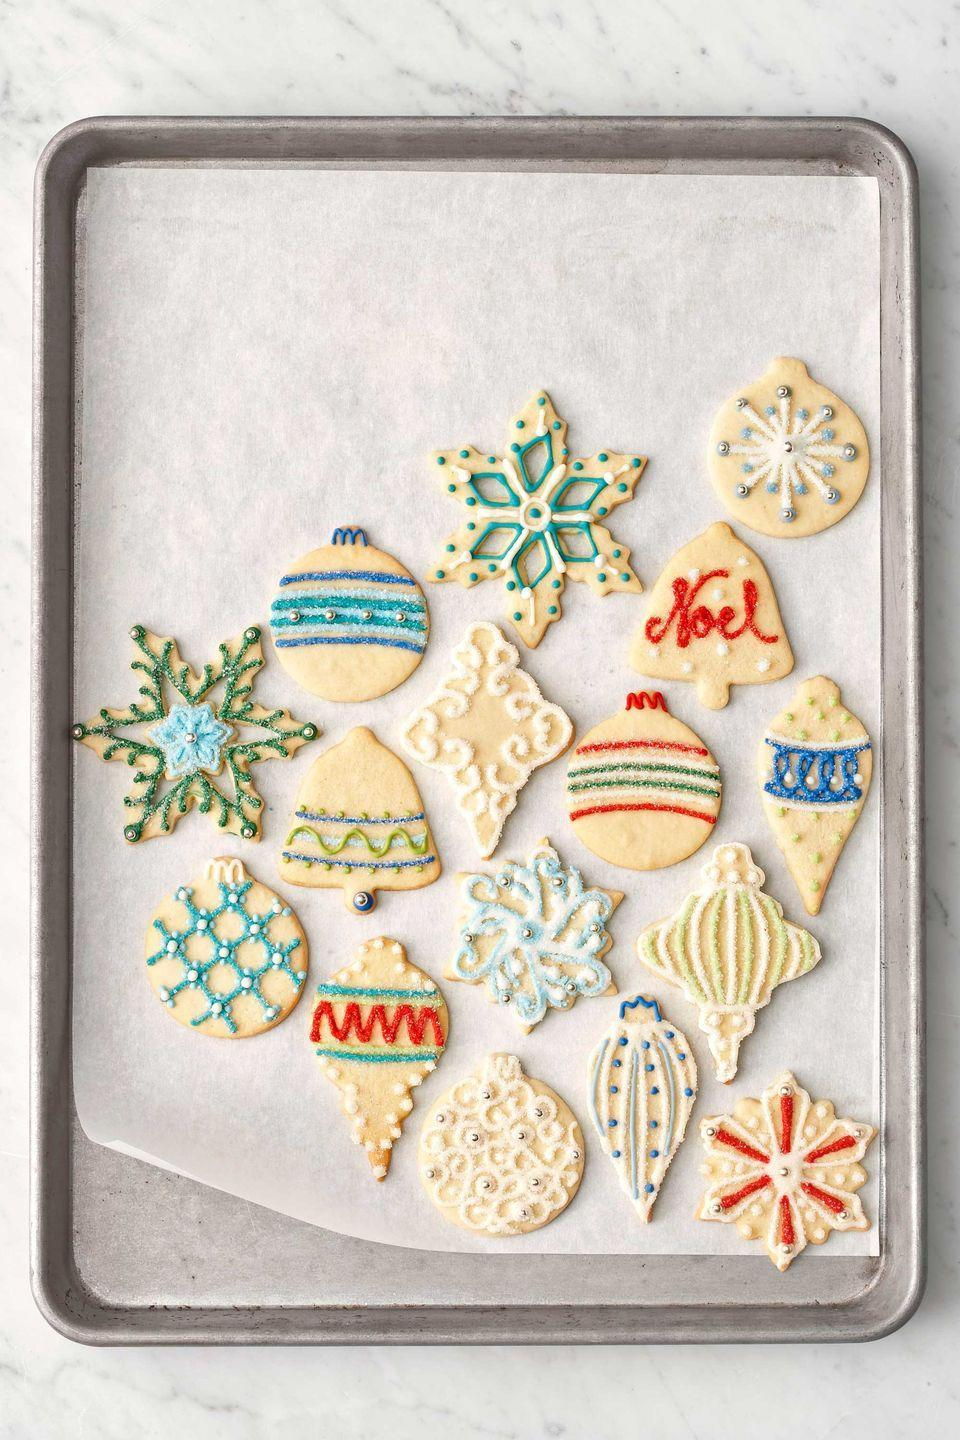 """<p>Simple sugar cookies go glamorous, thanks to ornament-shaped cutters and colorful icing.</p><p><strong><a href=""""https://www.countryliving.com/food-drinks/recipes/a3270/sugar-cookies-recipe/"""" rel=""""nofollow noopener"""" target=""""_blank"""" data-ylk=""""slk:Get the recipe"""" class=""""link rapid-noclick-resp"""">Get the recipe</a>.</strong></p>"""